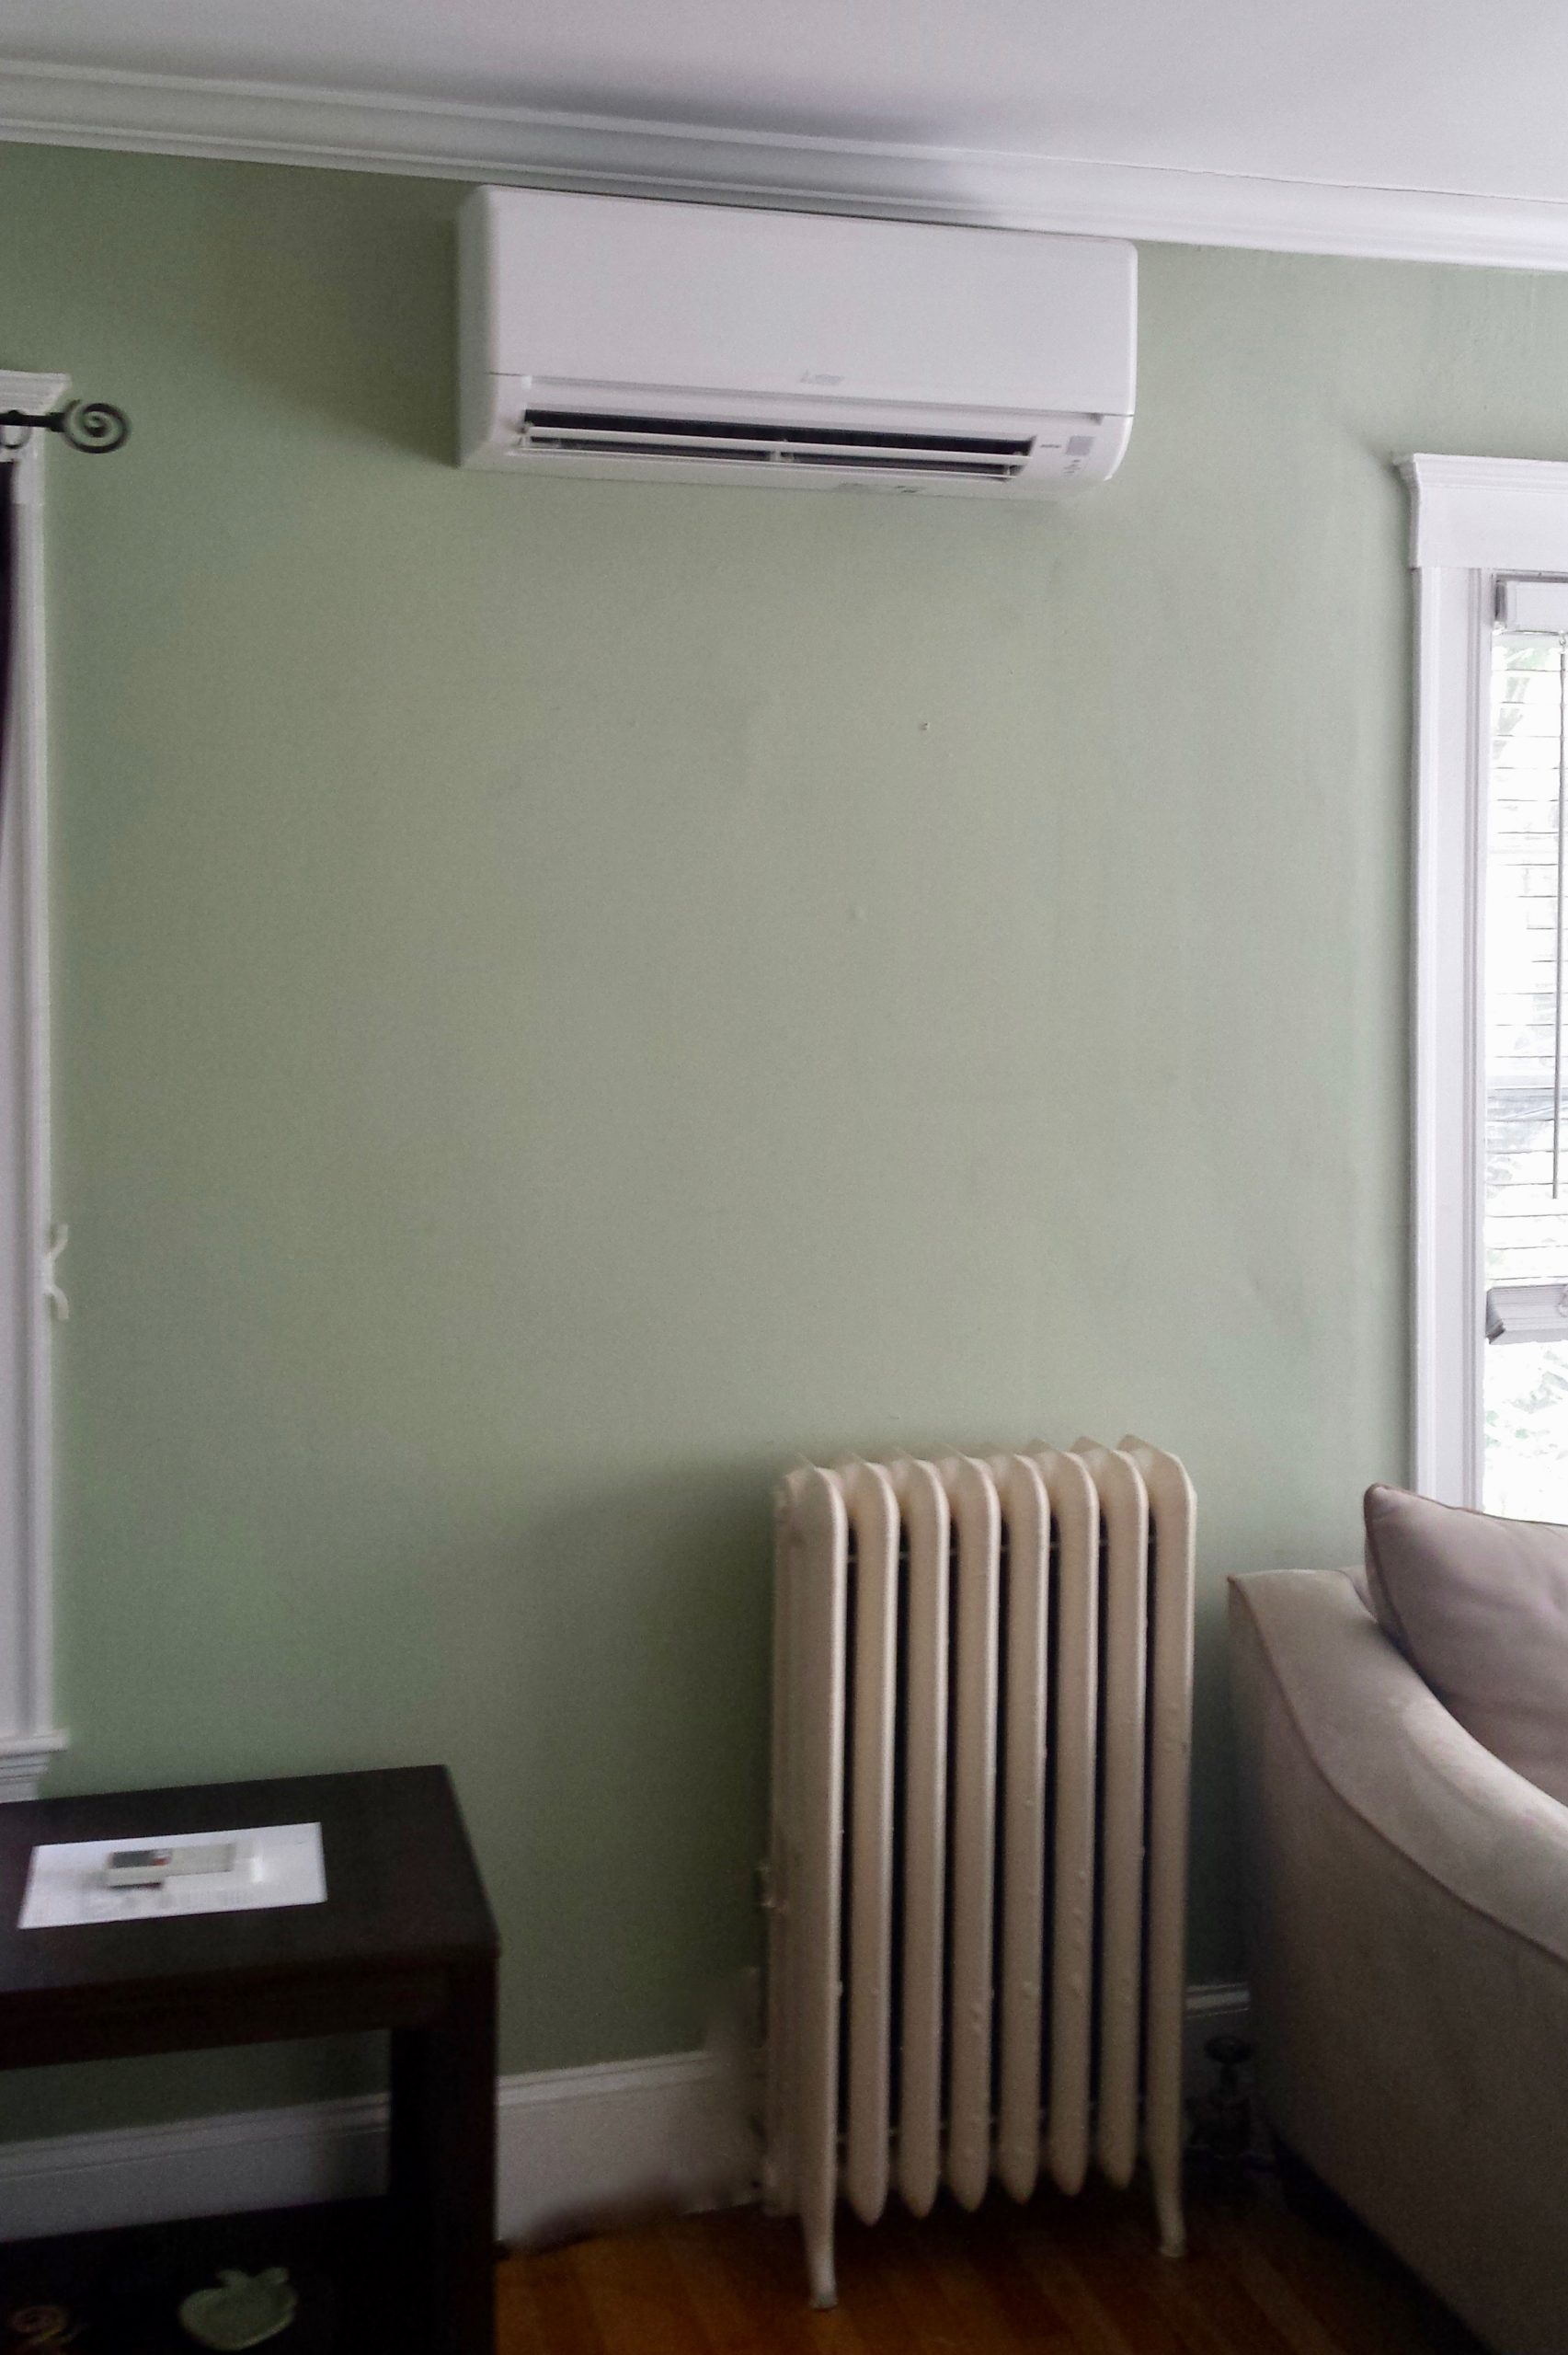 Ductless HVAC hanging wall unit in Dorchester, MA condo